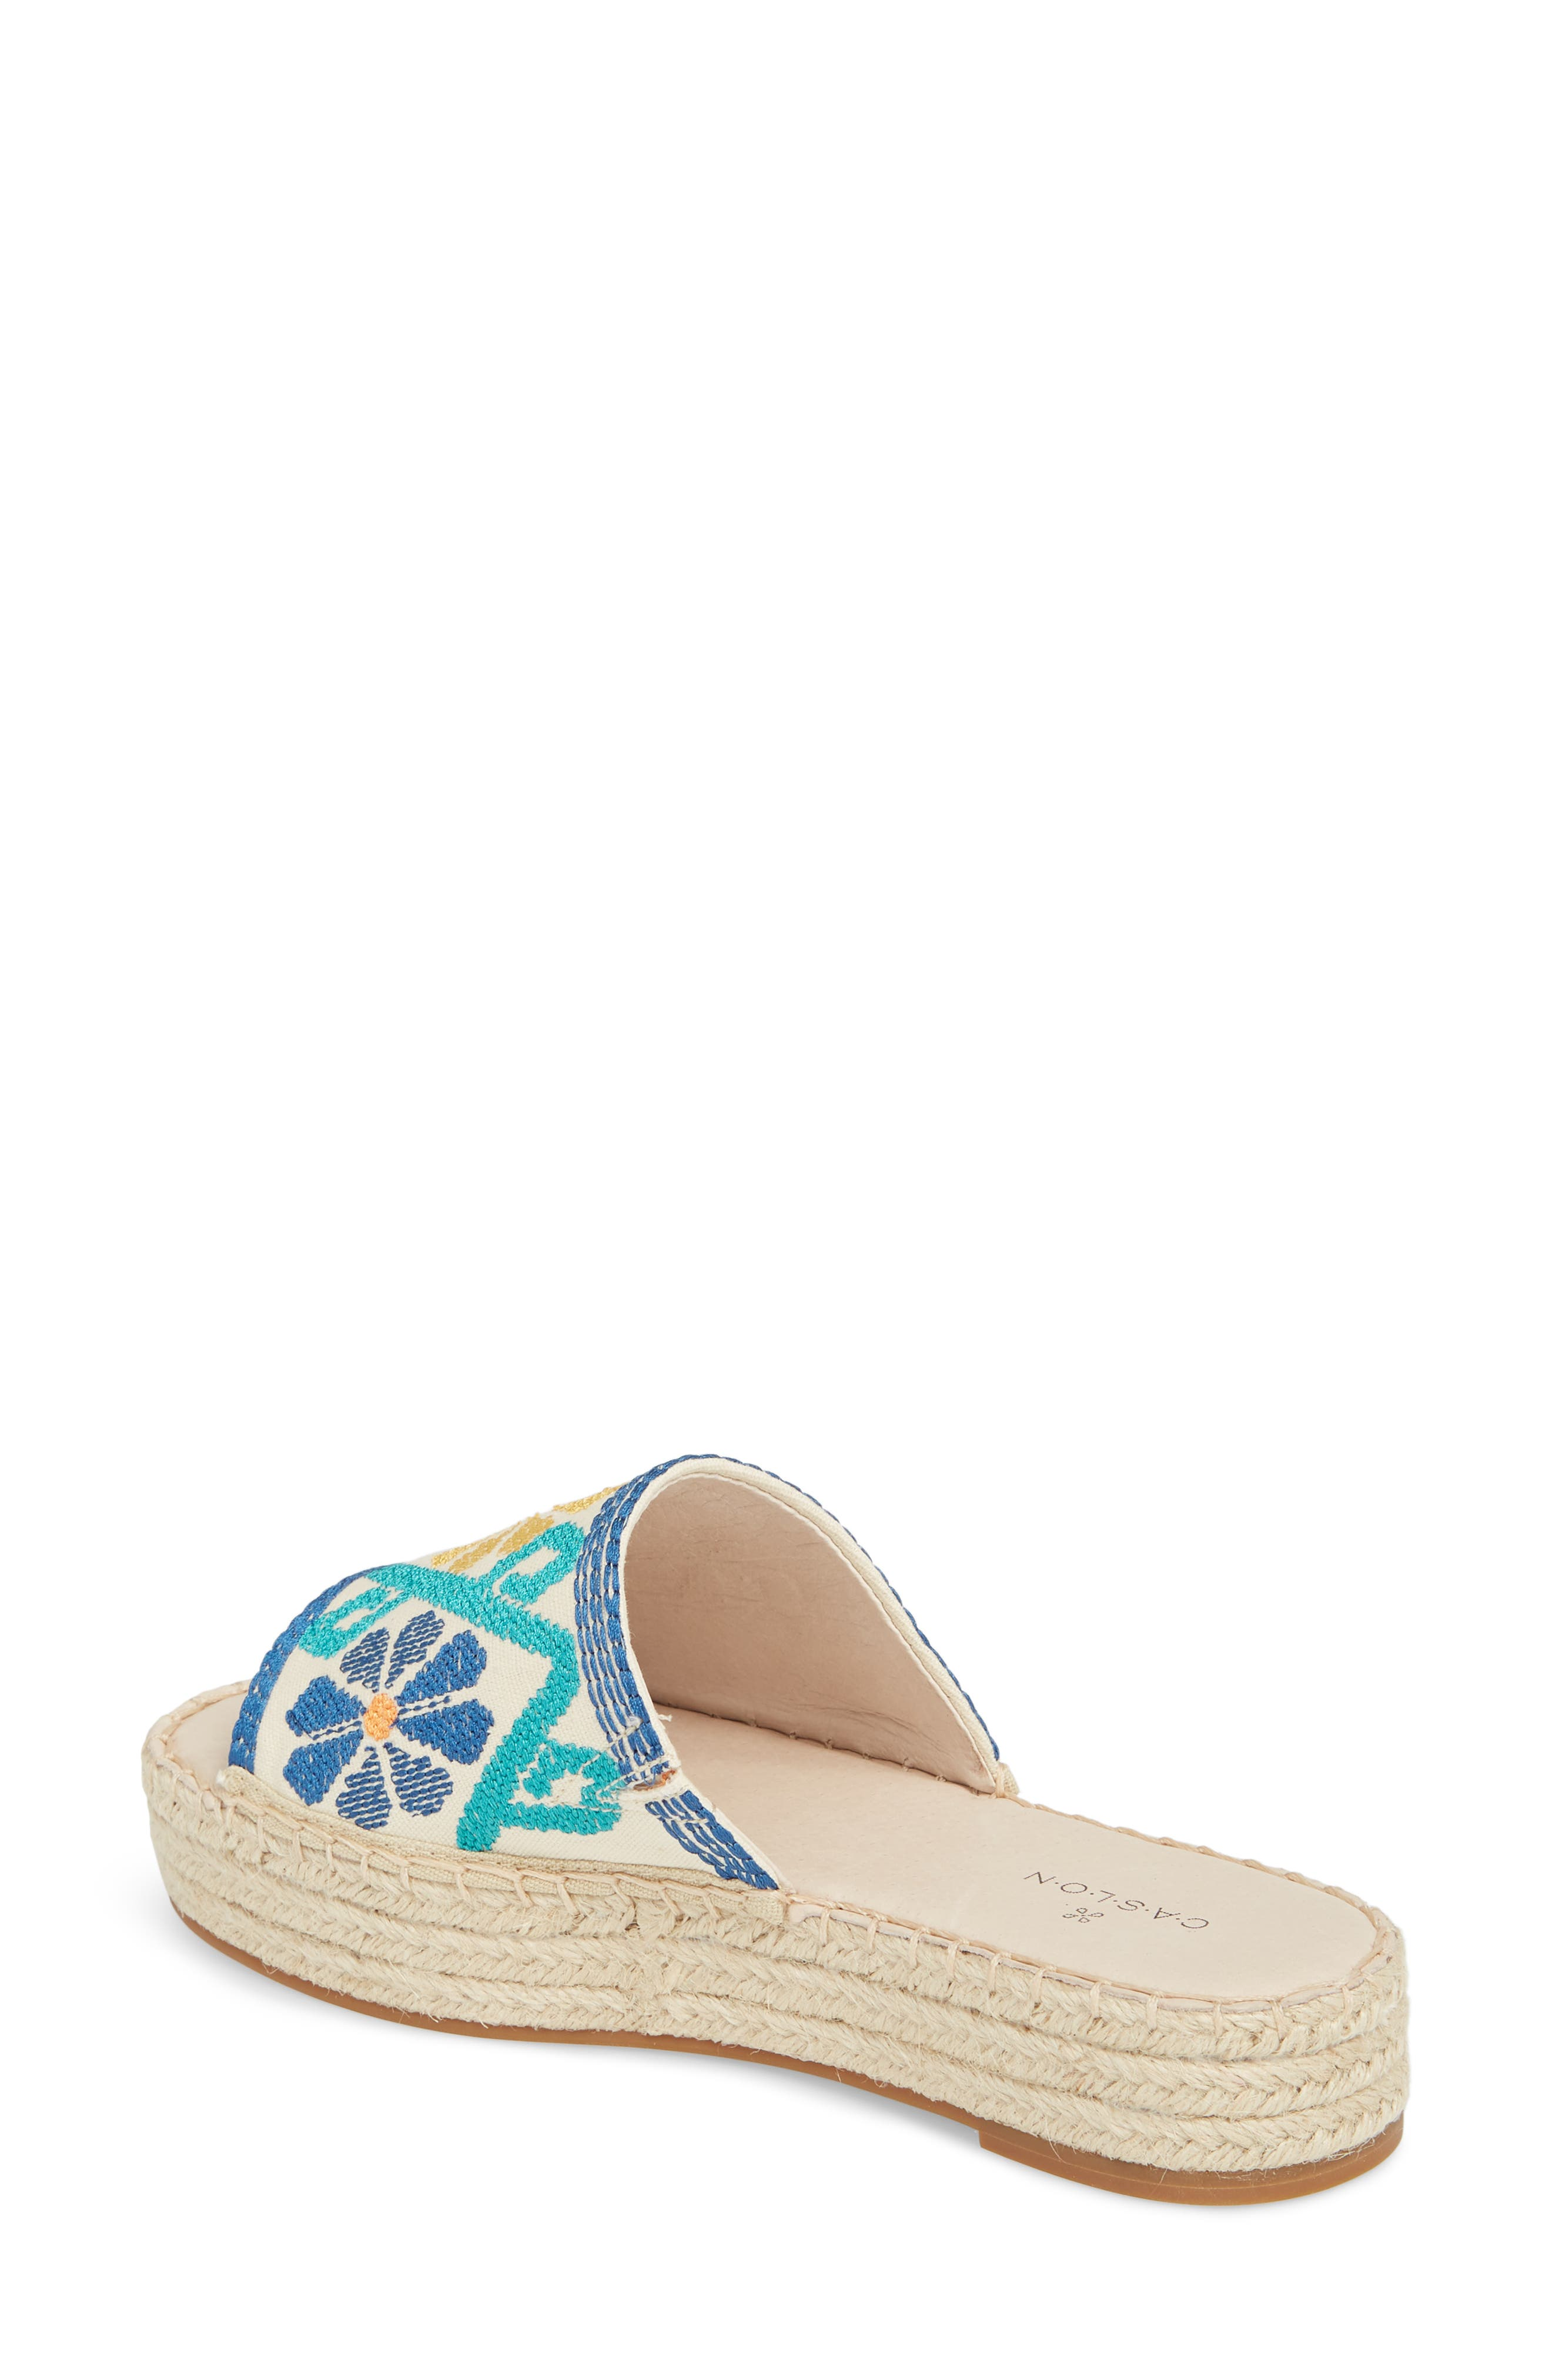 Cammy Platform Slide Sandal,                             Alternate thumbnail 2, color,                             Natural Embroidery Fabric